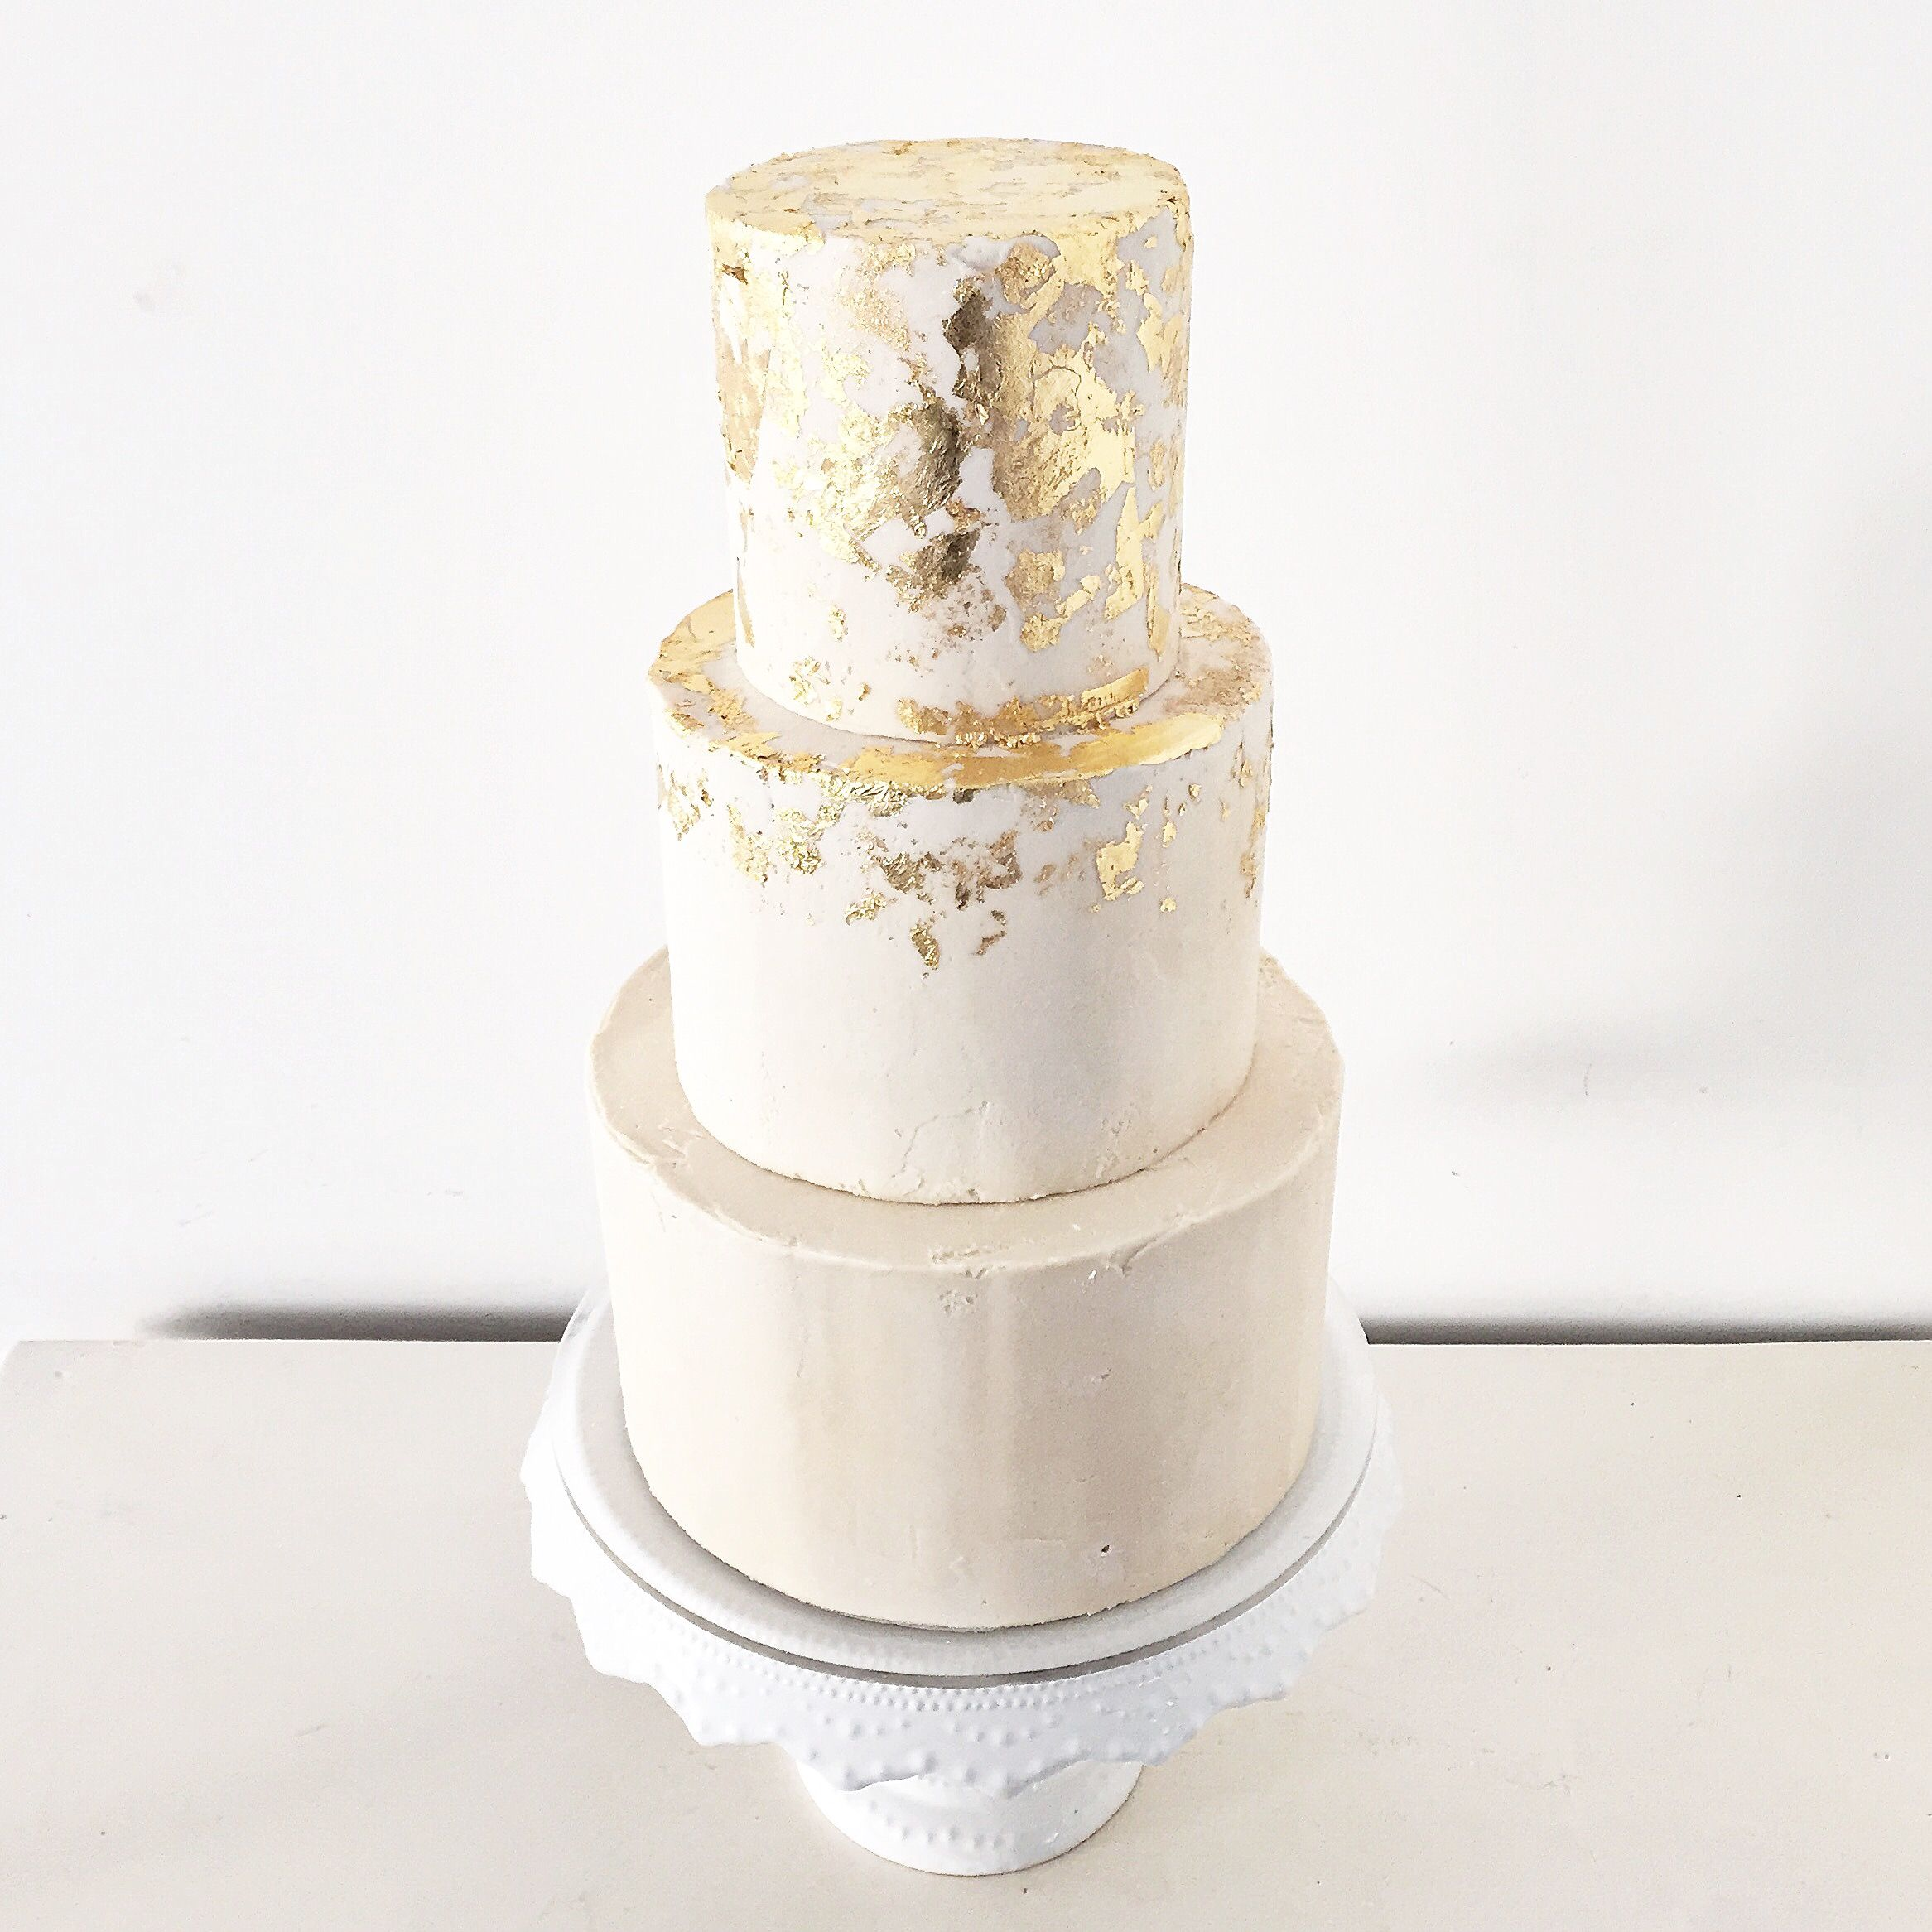 Three tier buttercream wedding cake with distressed gold